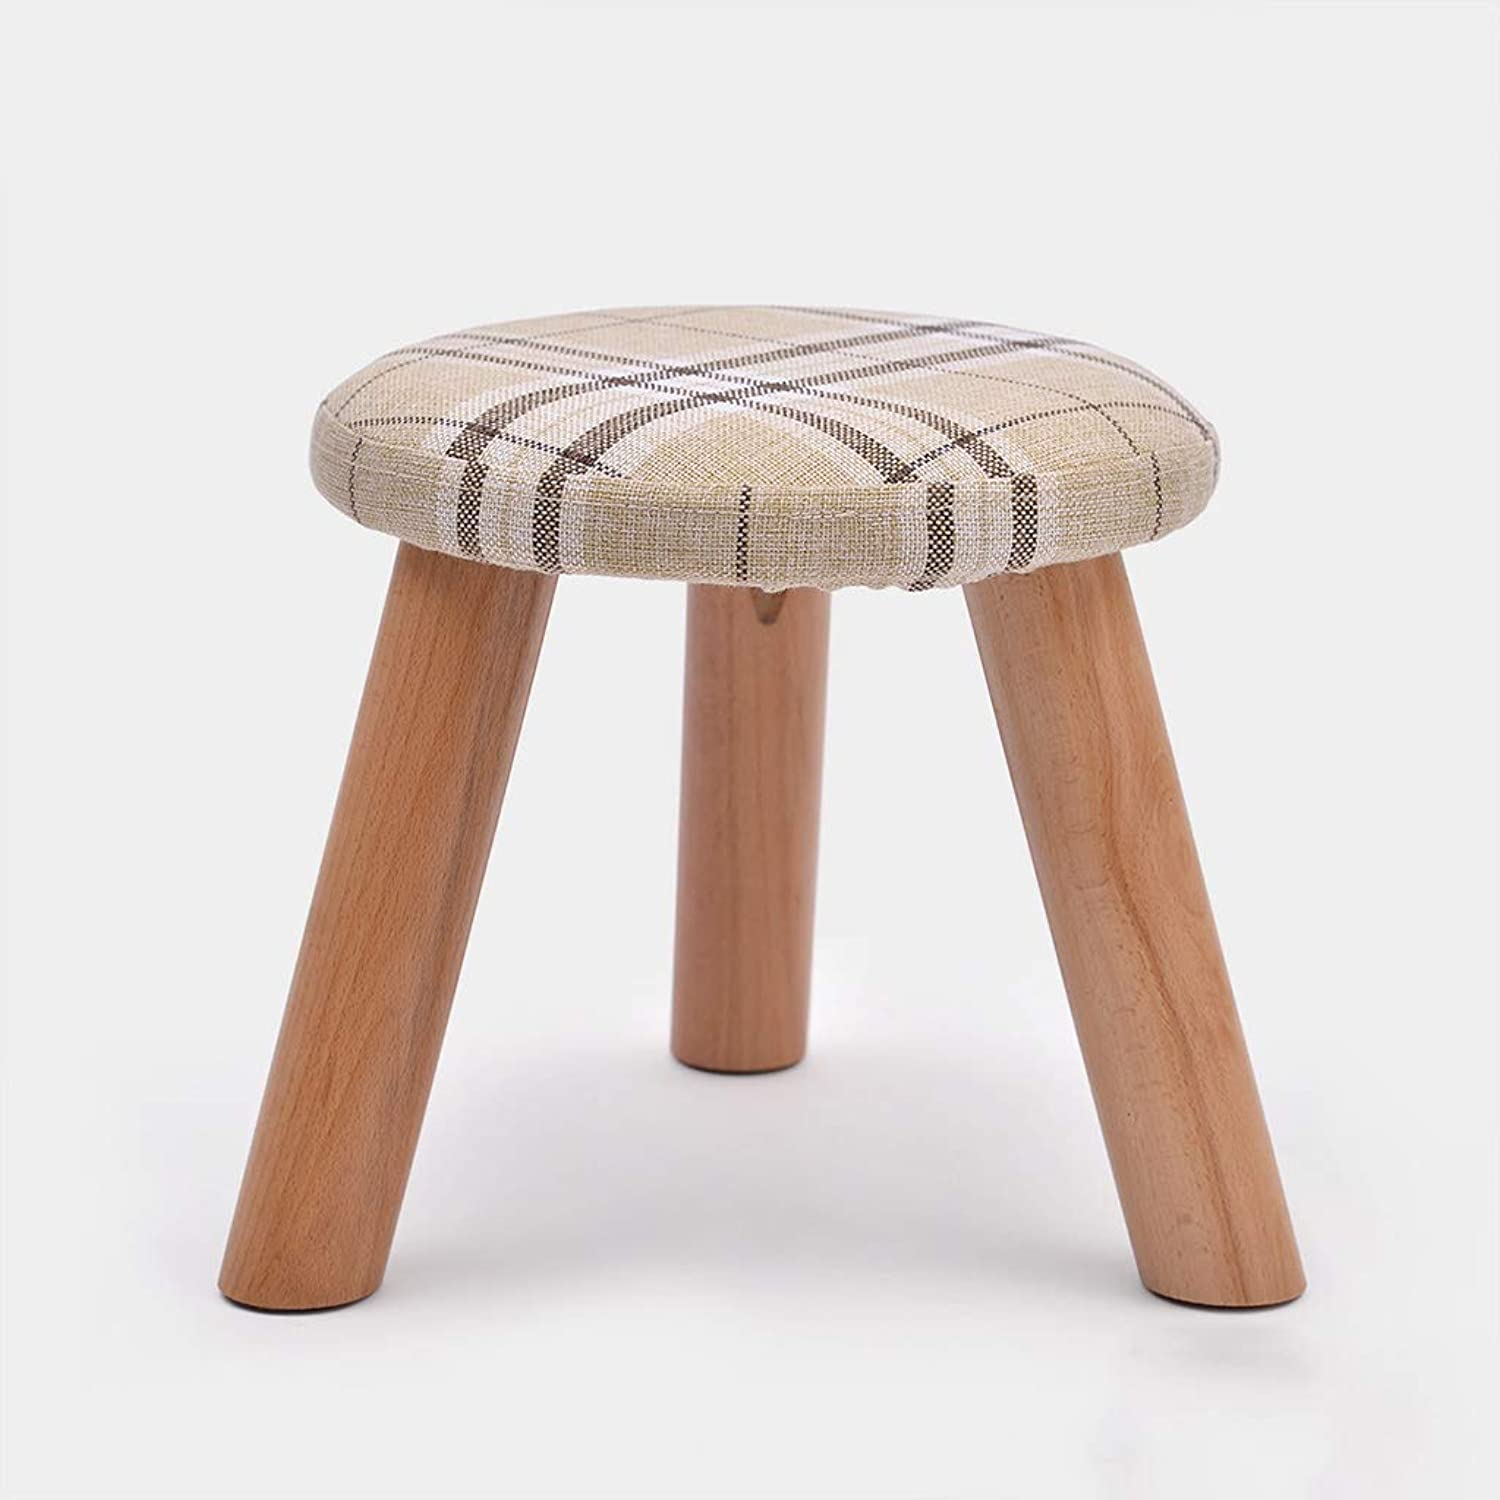 Small Stool Solid Wood shoes Bench Footstool Round Padded Footstool 3 Wooden Legs (color   C, Size   30  30cm)